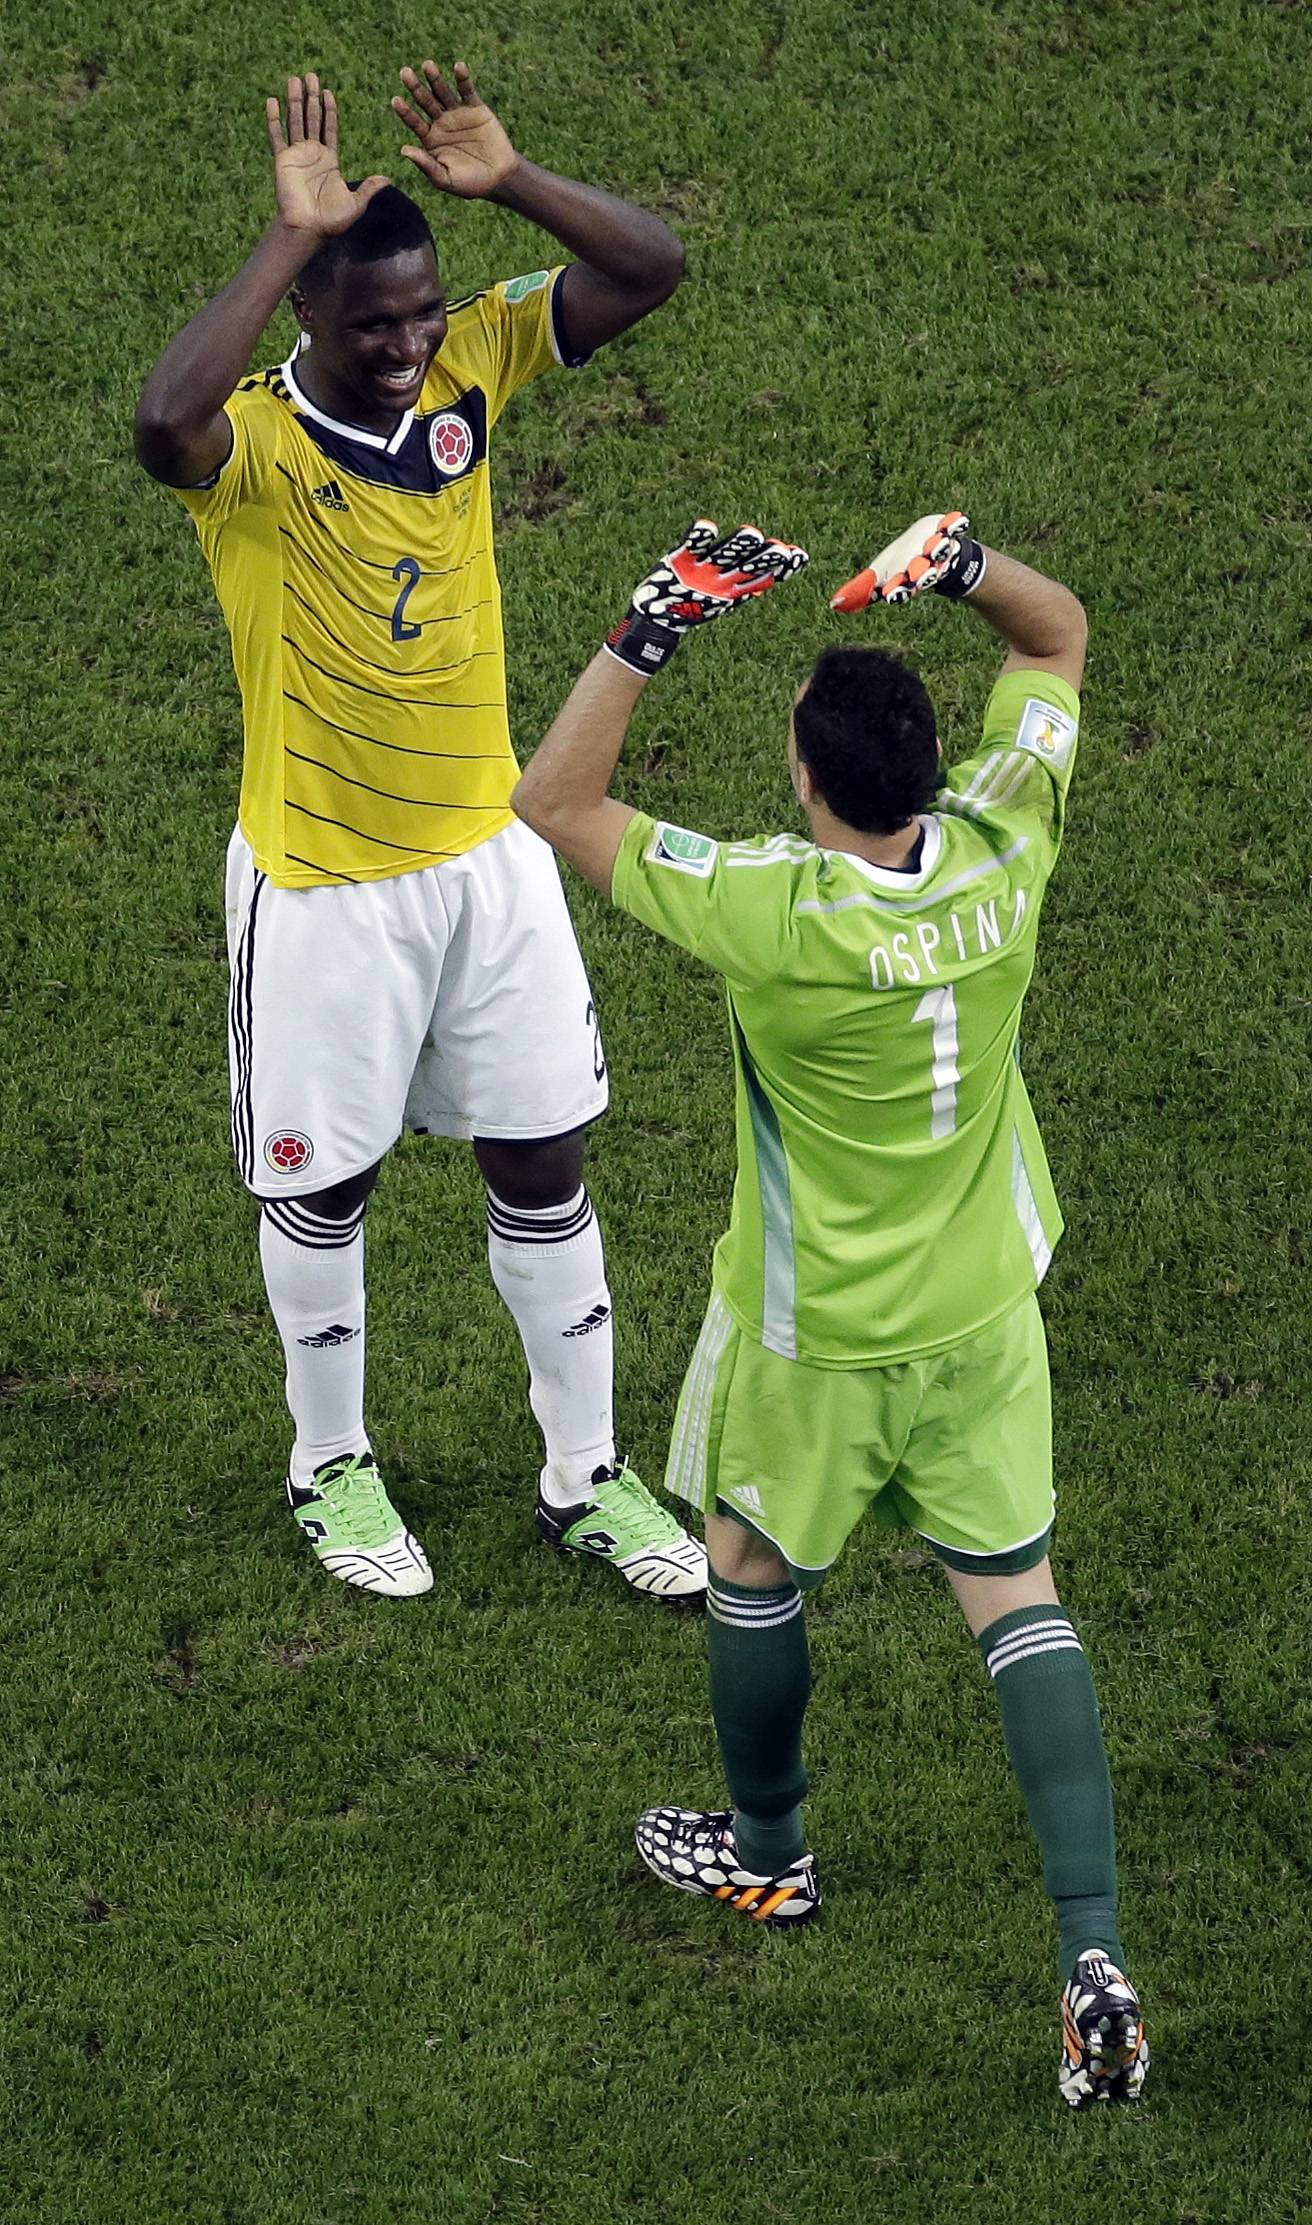 Colombia's Cristian Zapata, left, and goalkeeper David Ospina celebrate after the World Cup round of 16 soccer match between Colombia and Uruguay at the Maracana Stadium in Rio de Janeiro, Brazil, Saturday, June 28, 2014. Colombia advanced to the quarterfinals with a 2-0 win over Uruguay. (AP Photo/Felipe Dana, pool)